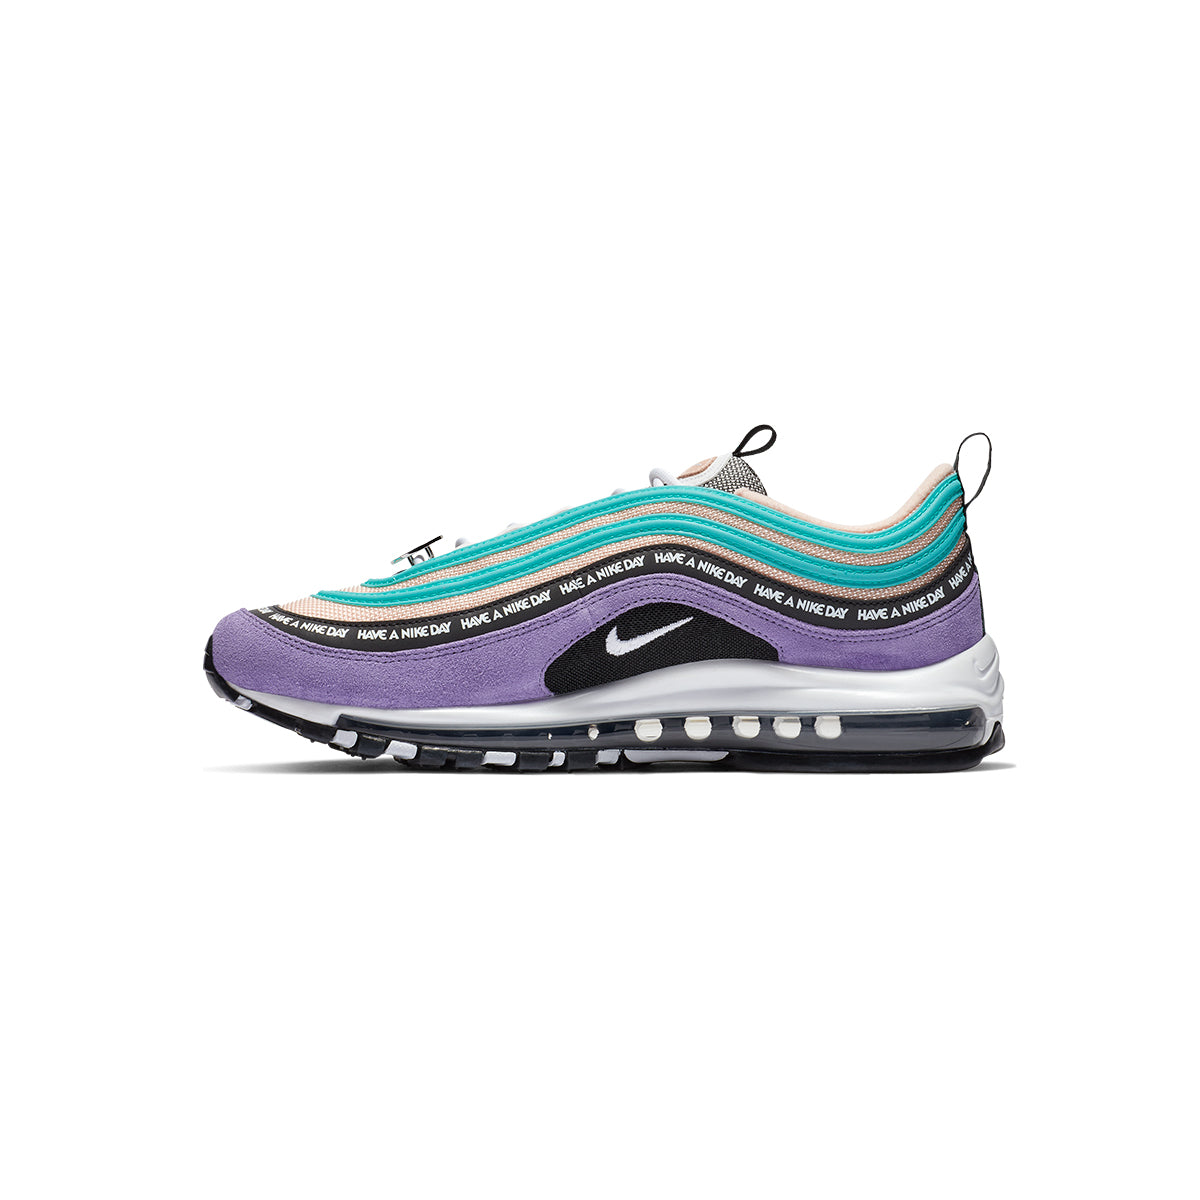 97bf3ea367 ConceptsIntl   Nike Air Max 97 ND (Space Purple/White-Black-Washed Coral)